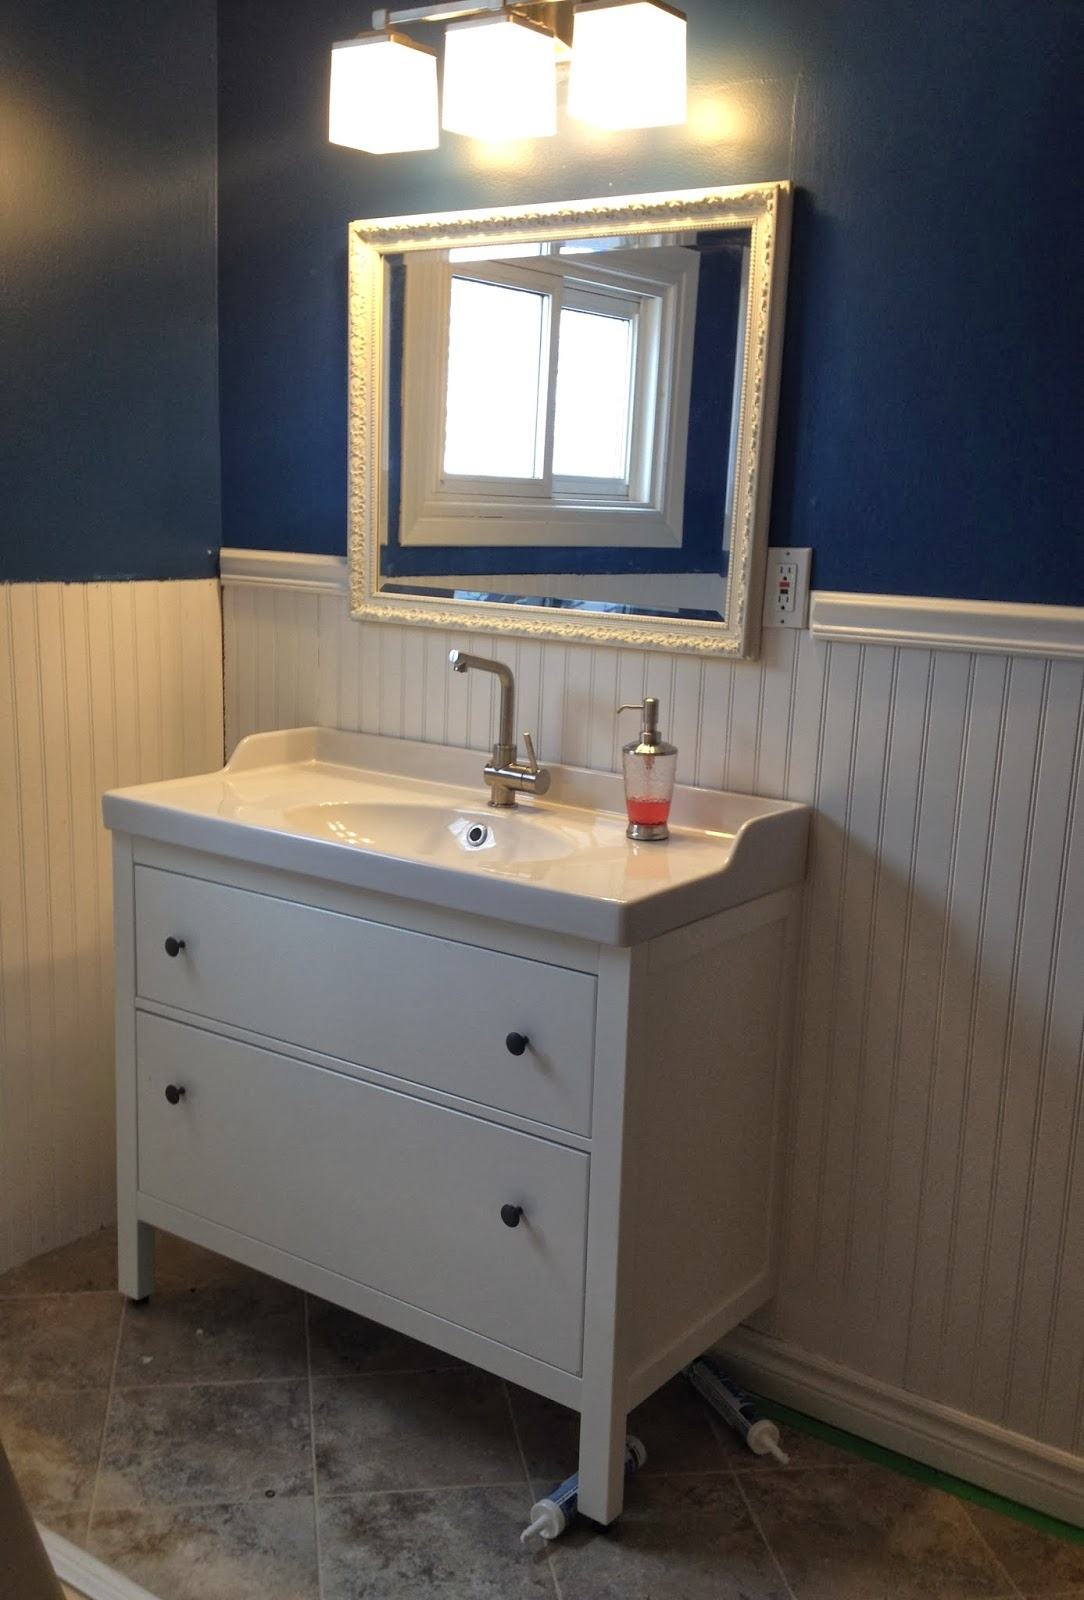 Ikea Hemnes Bathroom Vanity Reviews